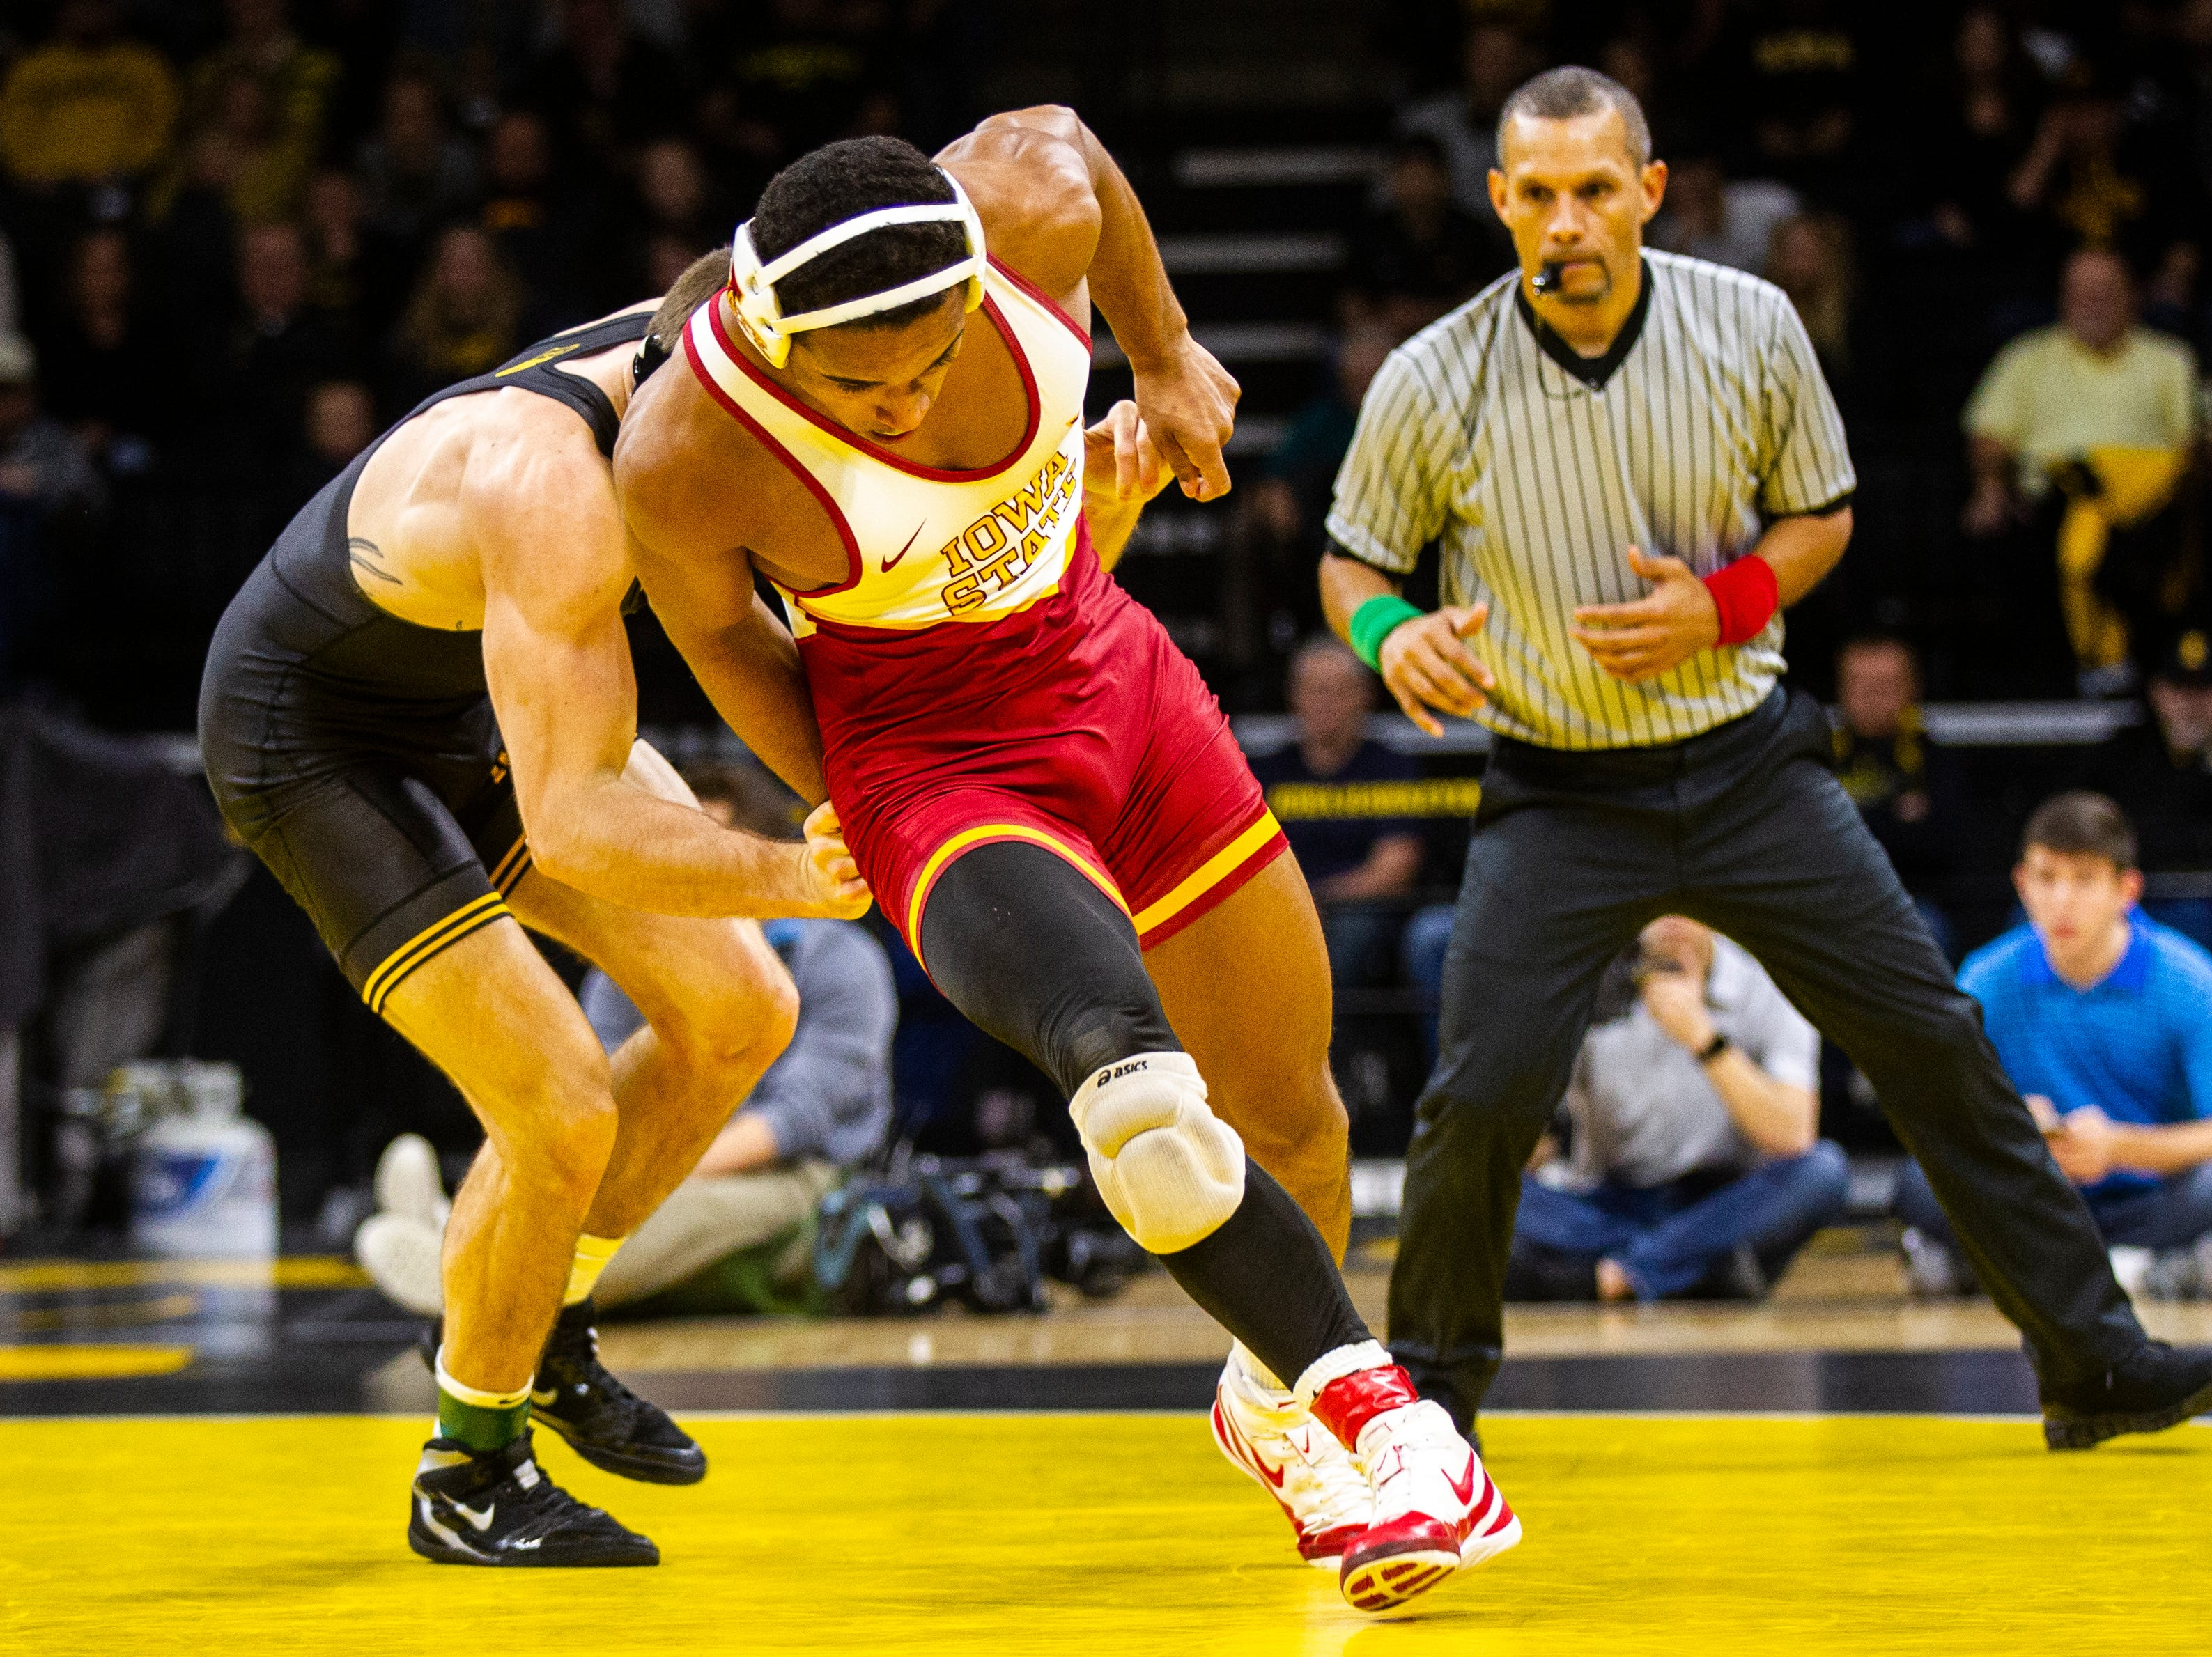 Iowa State's Marcus Coleman, right, gets an escape while wrestling Iowa's Myles Wilson at 174 during a NCAA Cy-Hawk series wrestling dual on Saturday, Dec. 1, 2018, at Carver-Hawkeye Arena in Iowa City.